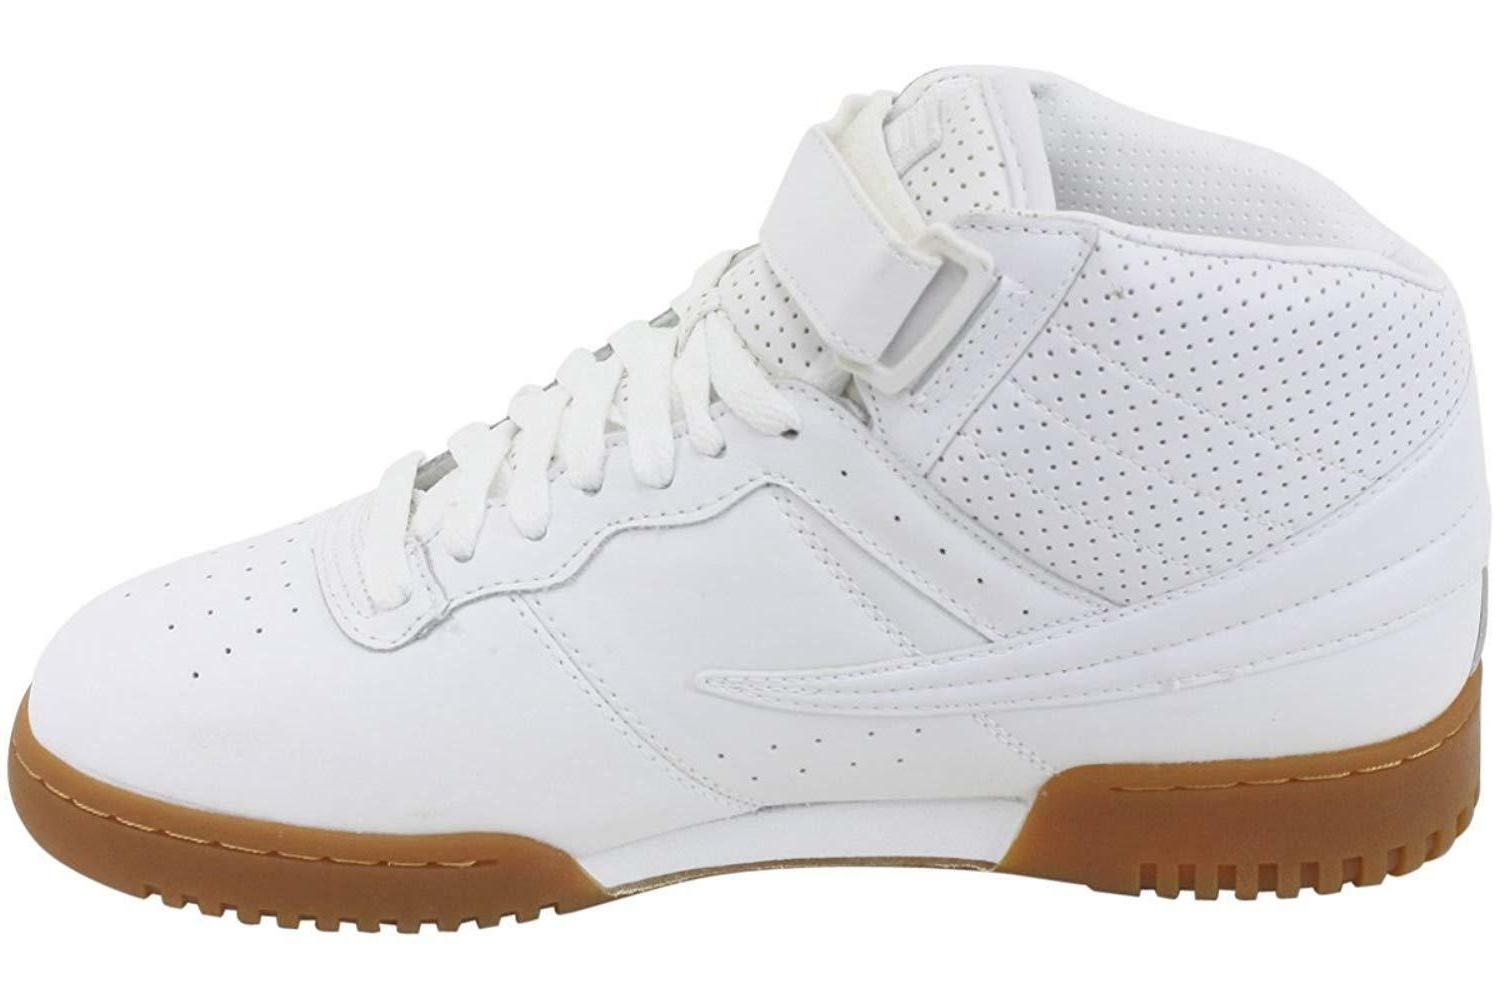 Mens Fila Classic High Basketball Shoes Sneakers